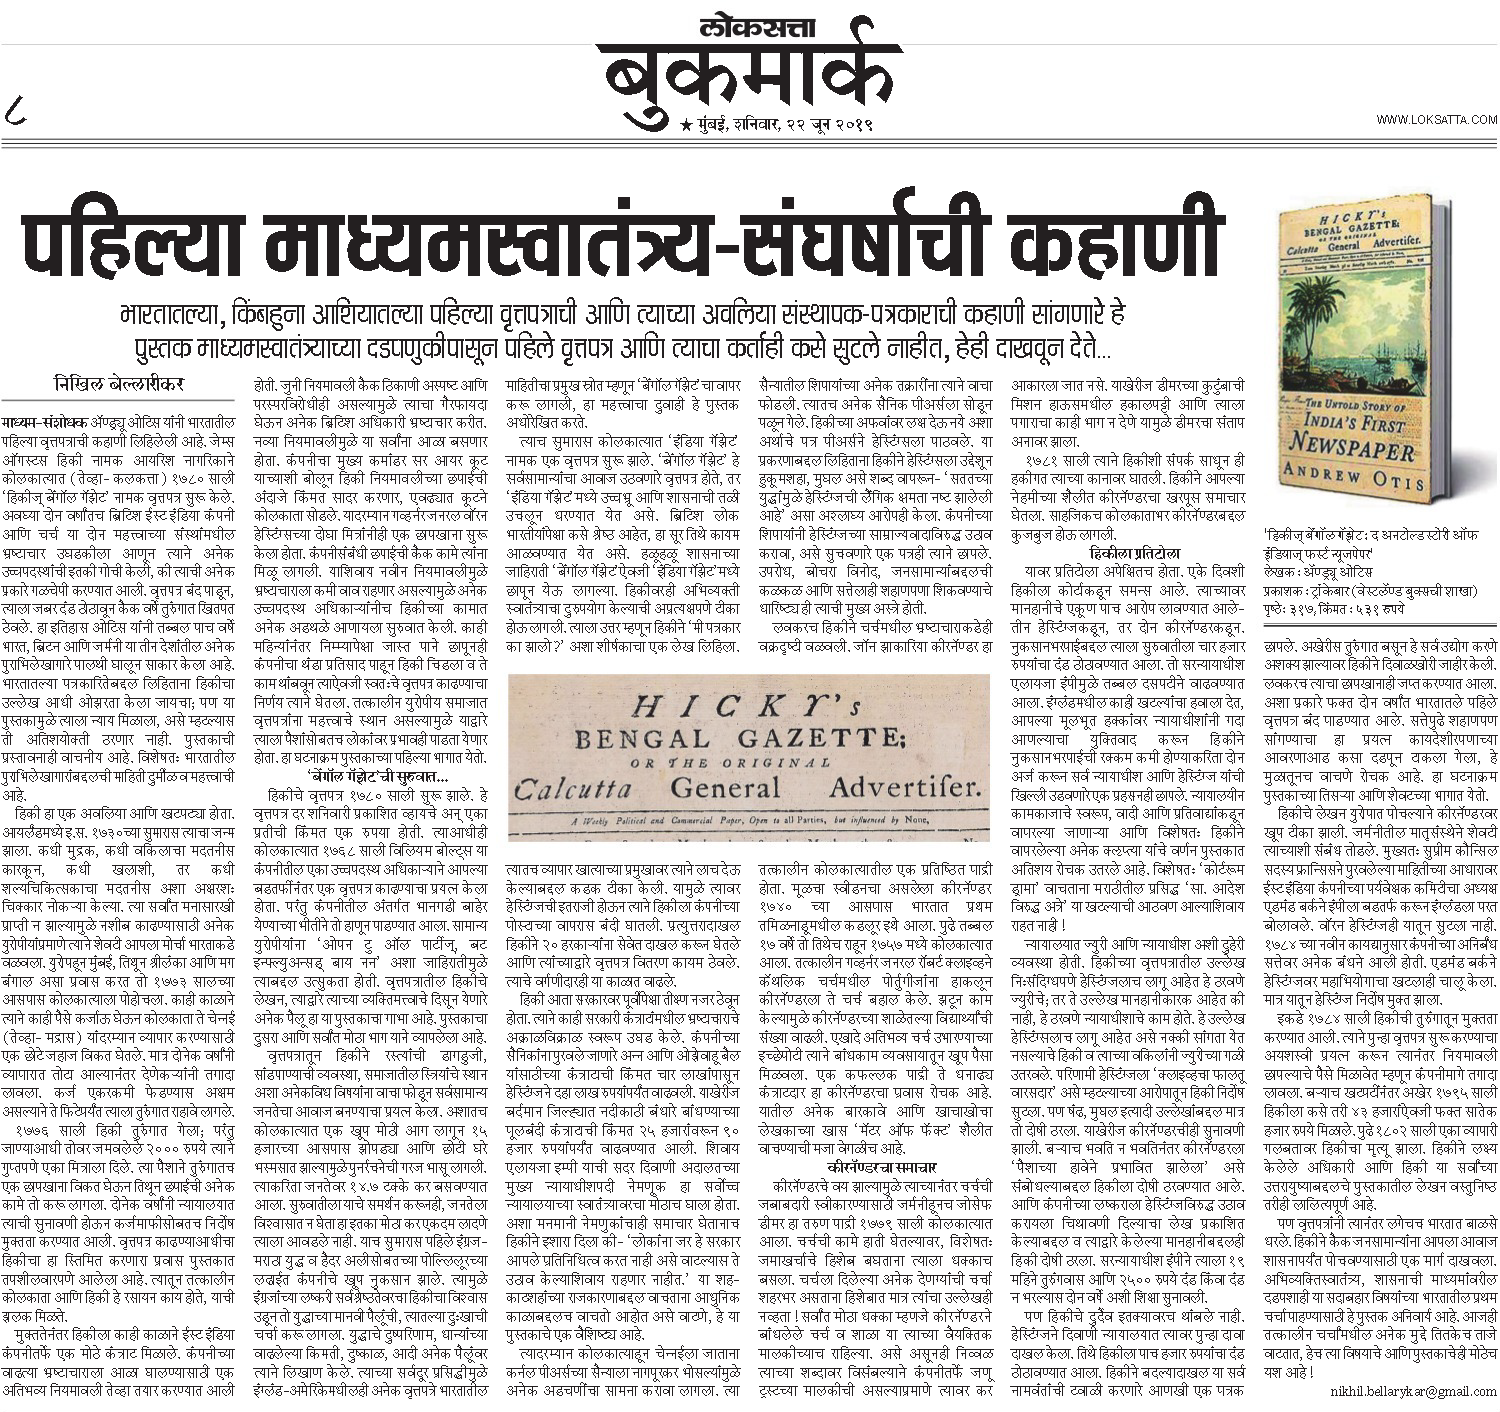 2019.06.22 Loksatta Review of Hicky's Bengal Gazette by Nikhil Bellarykar